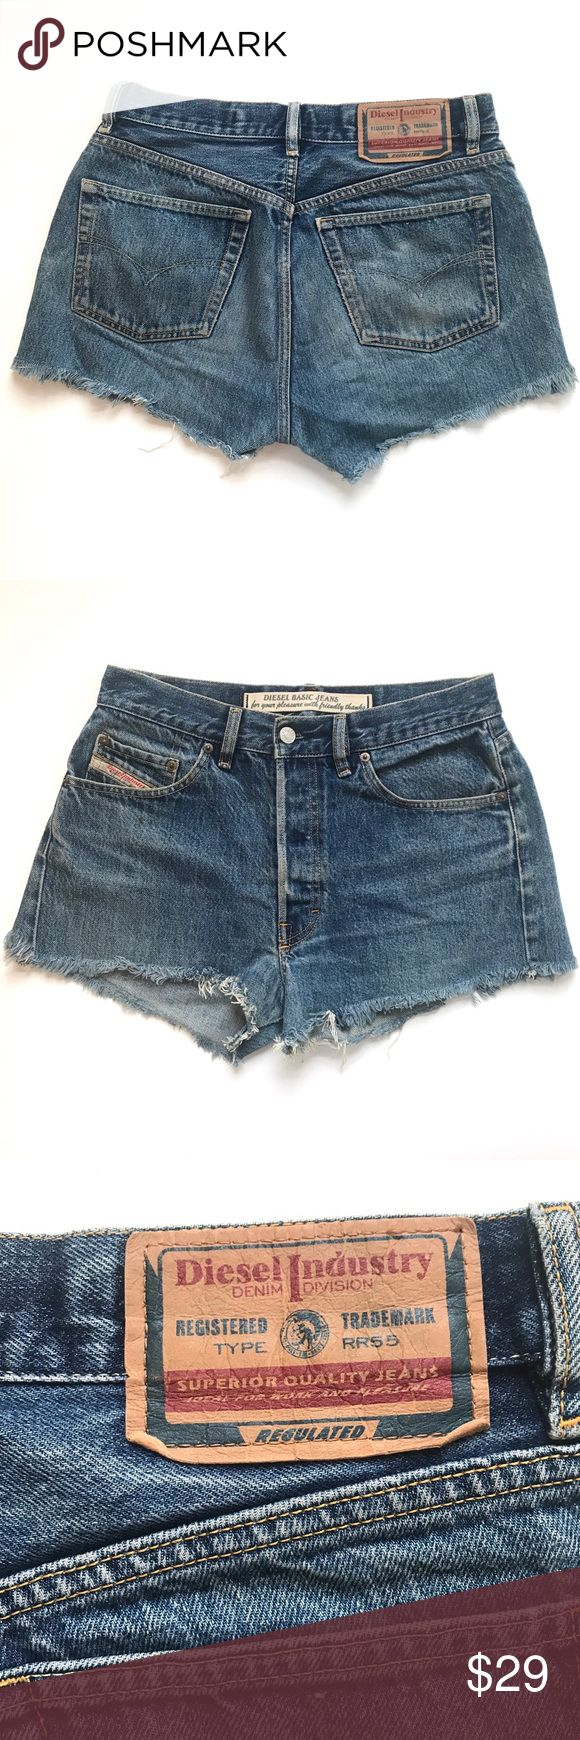 "Diesel Distressed High Waisted Jean Cut Off Shorts In great pre-owned condition! One small mark on the front (see photos) -it adds to the vintage character! These are perfect for summer paired with a crop top or a longer tee tucked in!  •Women's size 8/10 (The tag says 32 but that's not USA sizing) •15"" across waist, 11"" rise, 12"" from waistband to ""hem"" •100% Cotton •Retail $83 👋🏼 Make me an offer!  🎒 Bundle for 20% off your whole order!  🤷🏼‍♀️ No trades nor lowball offers! 🥂 Thank…"